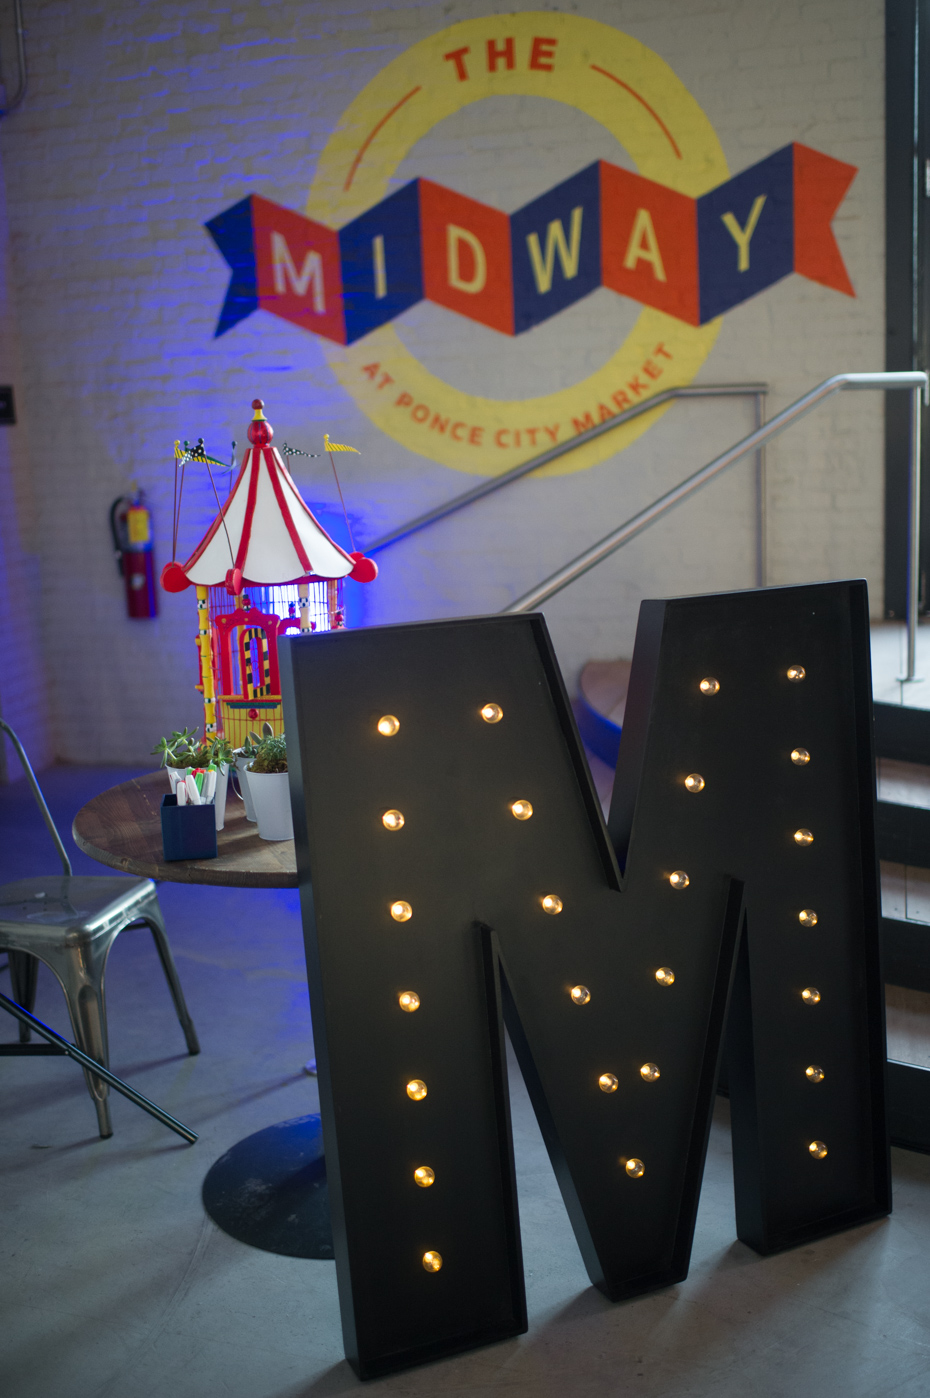 The Midway at Ponce City Market